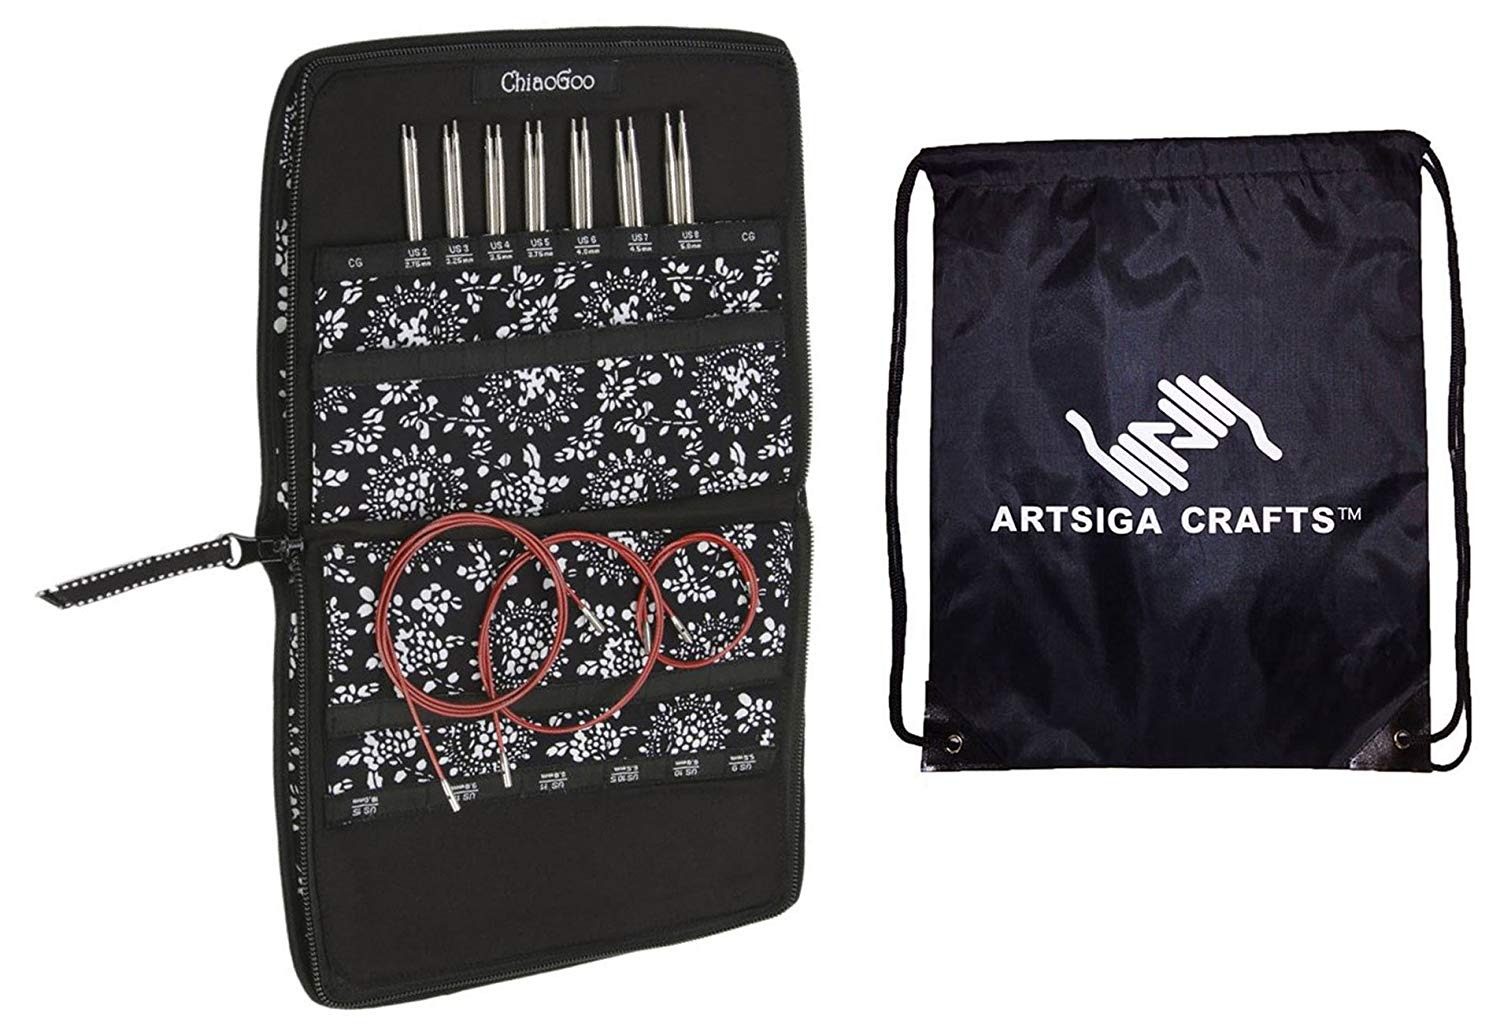 ChiaoGoo Twist Red Lace Interchangeable Knitting Needle Set Small Needles Sizes US 2 (2.75mm)-US 8 (5mm) Bundle with 1 Artsiga Crafts Project Bag 7500-S